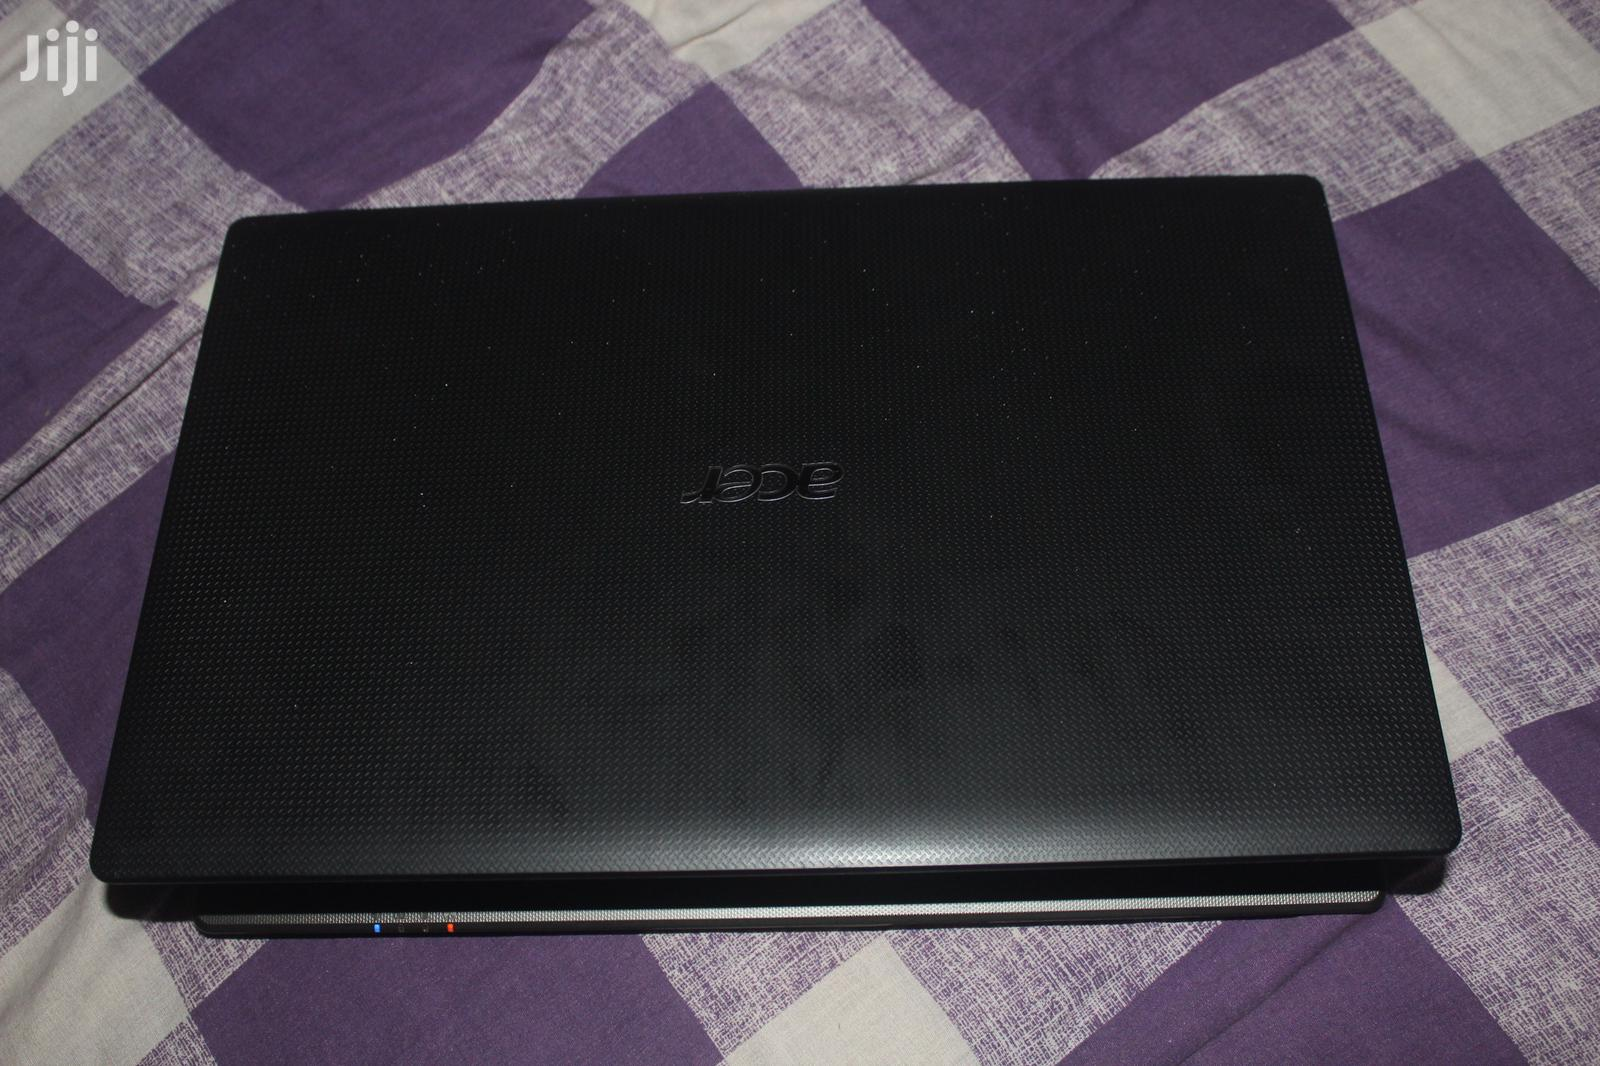 Archive: Laptop Acer Aspire 5750 4GB Intel Core I5 HDD 500GB